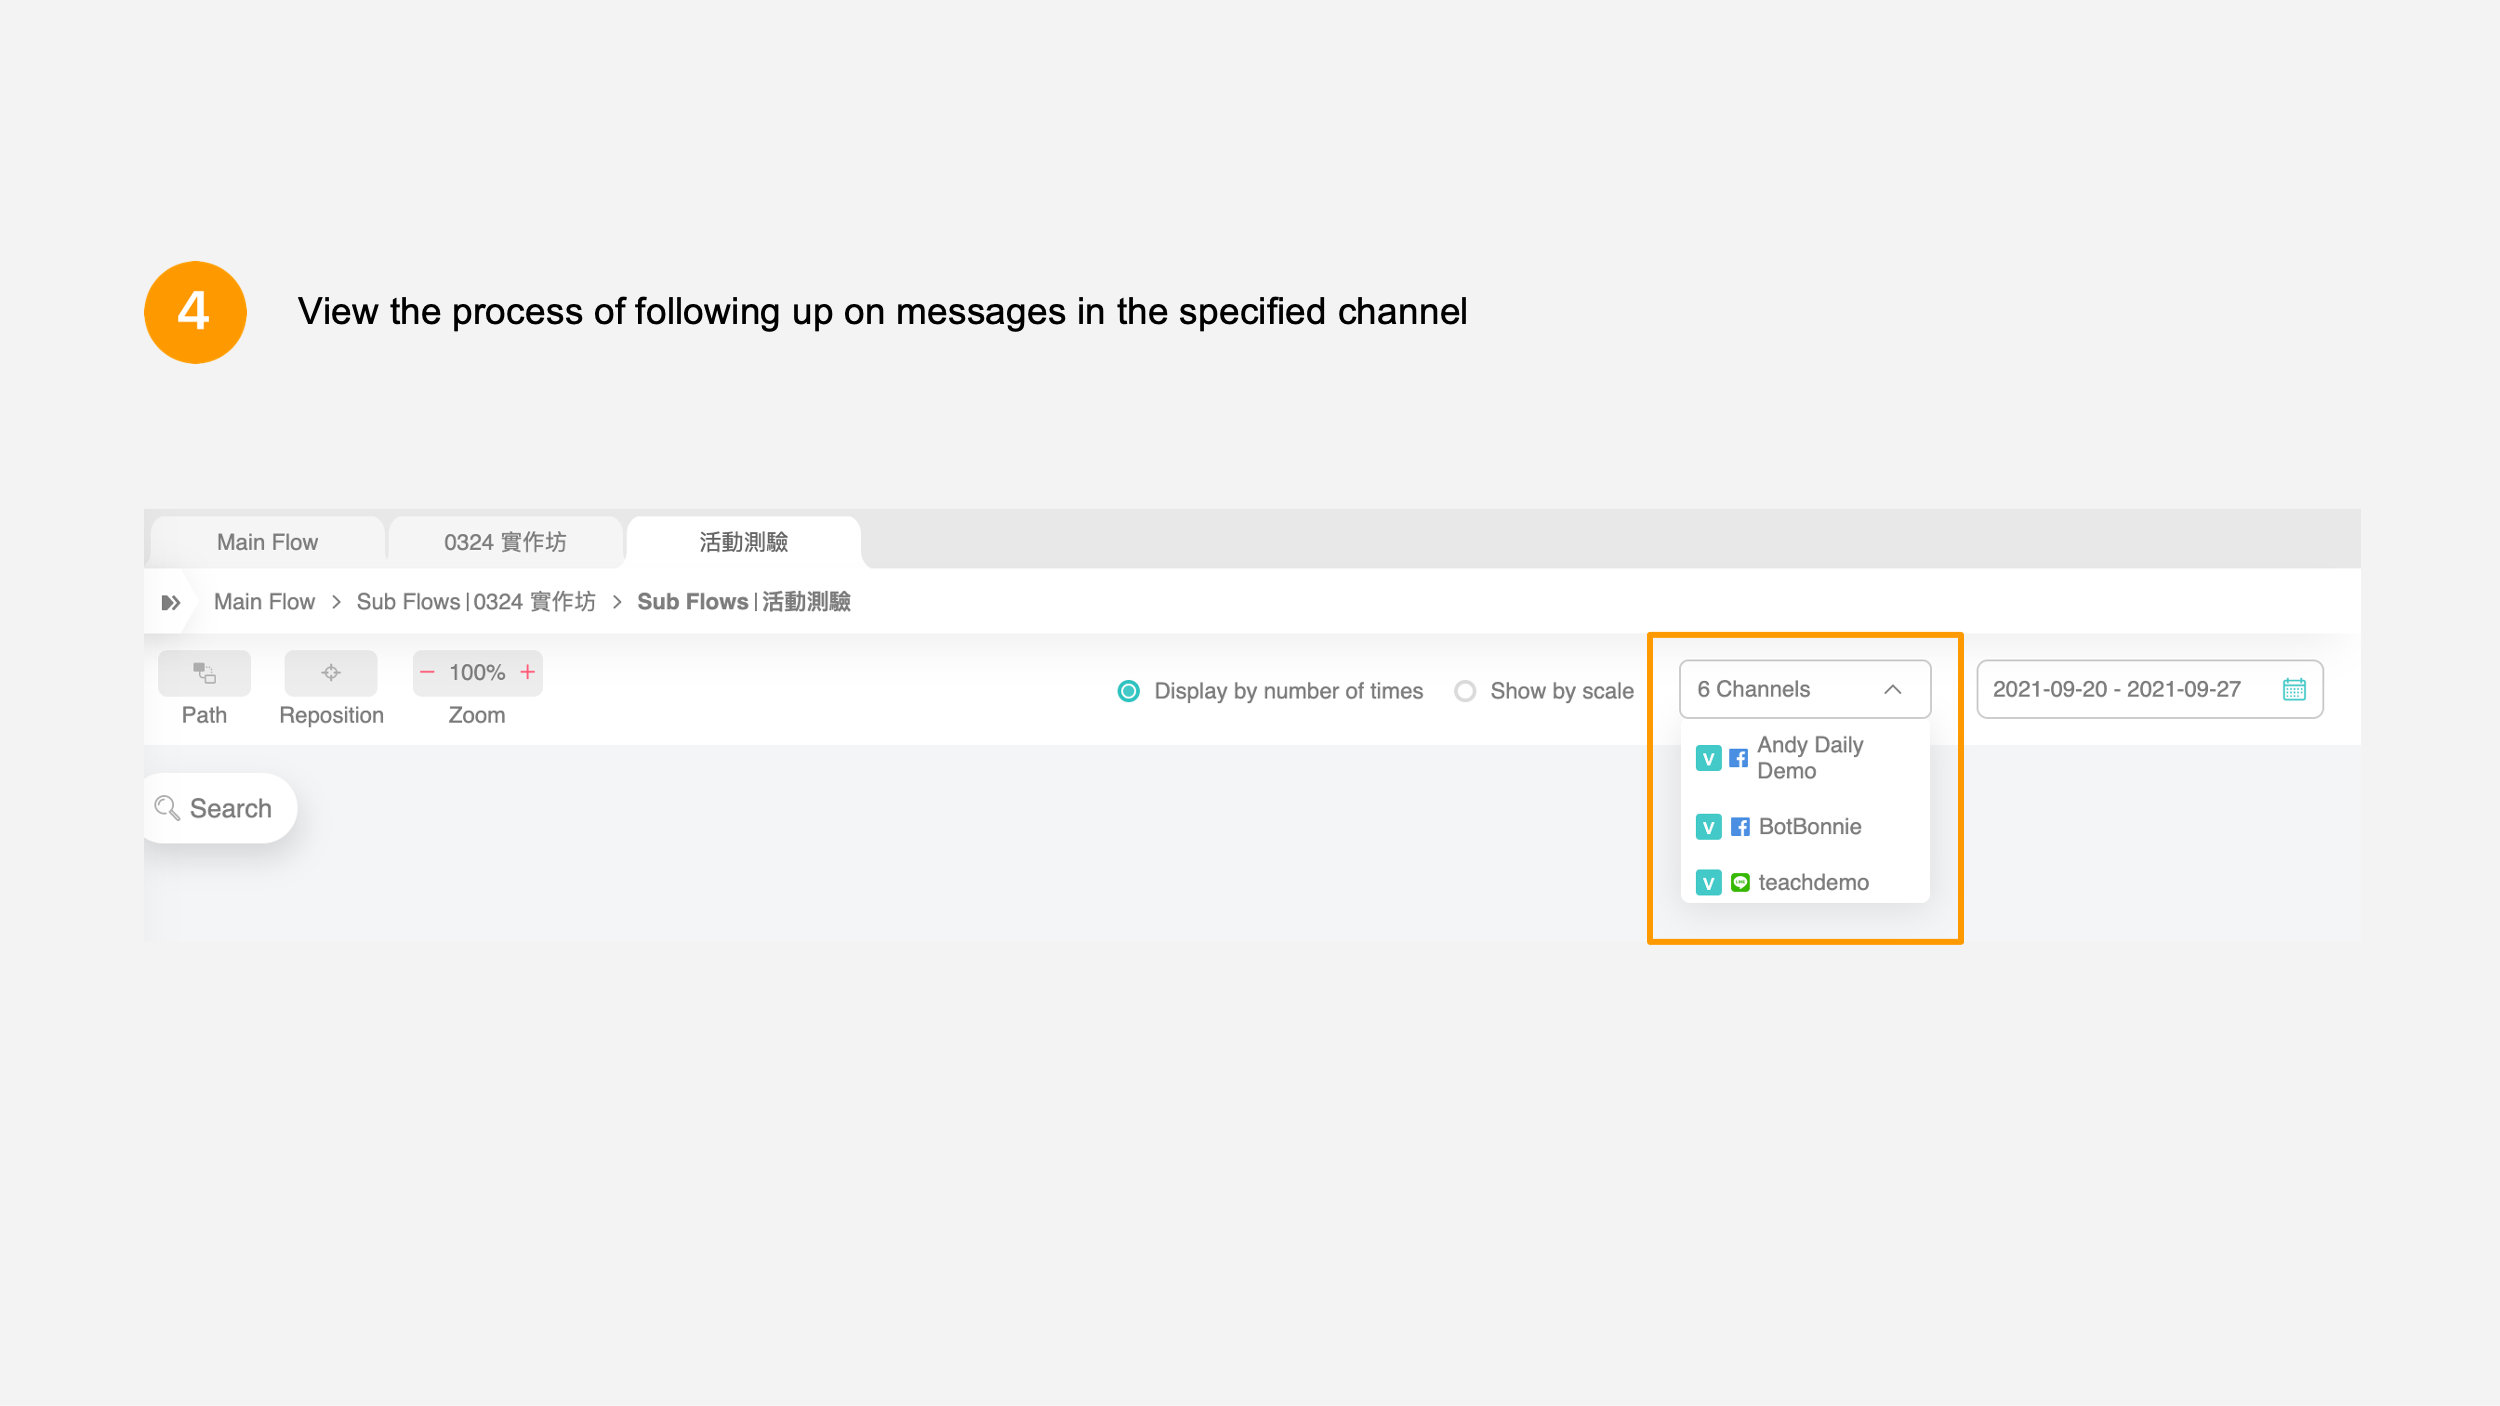 Filter the channels you want to view